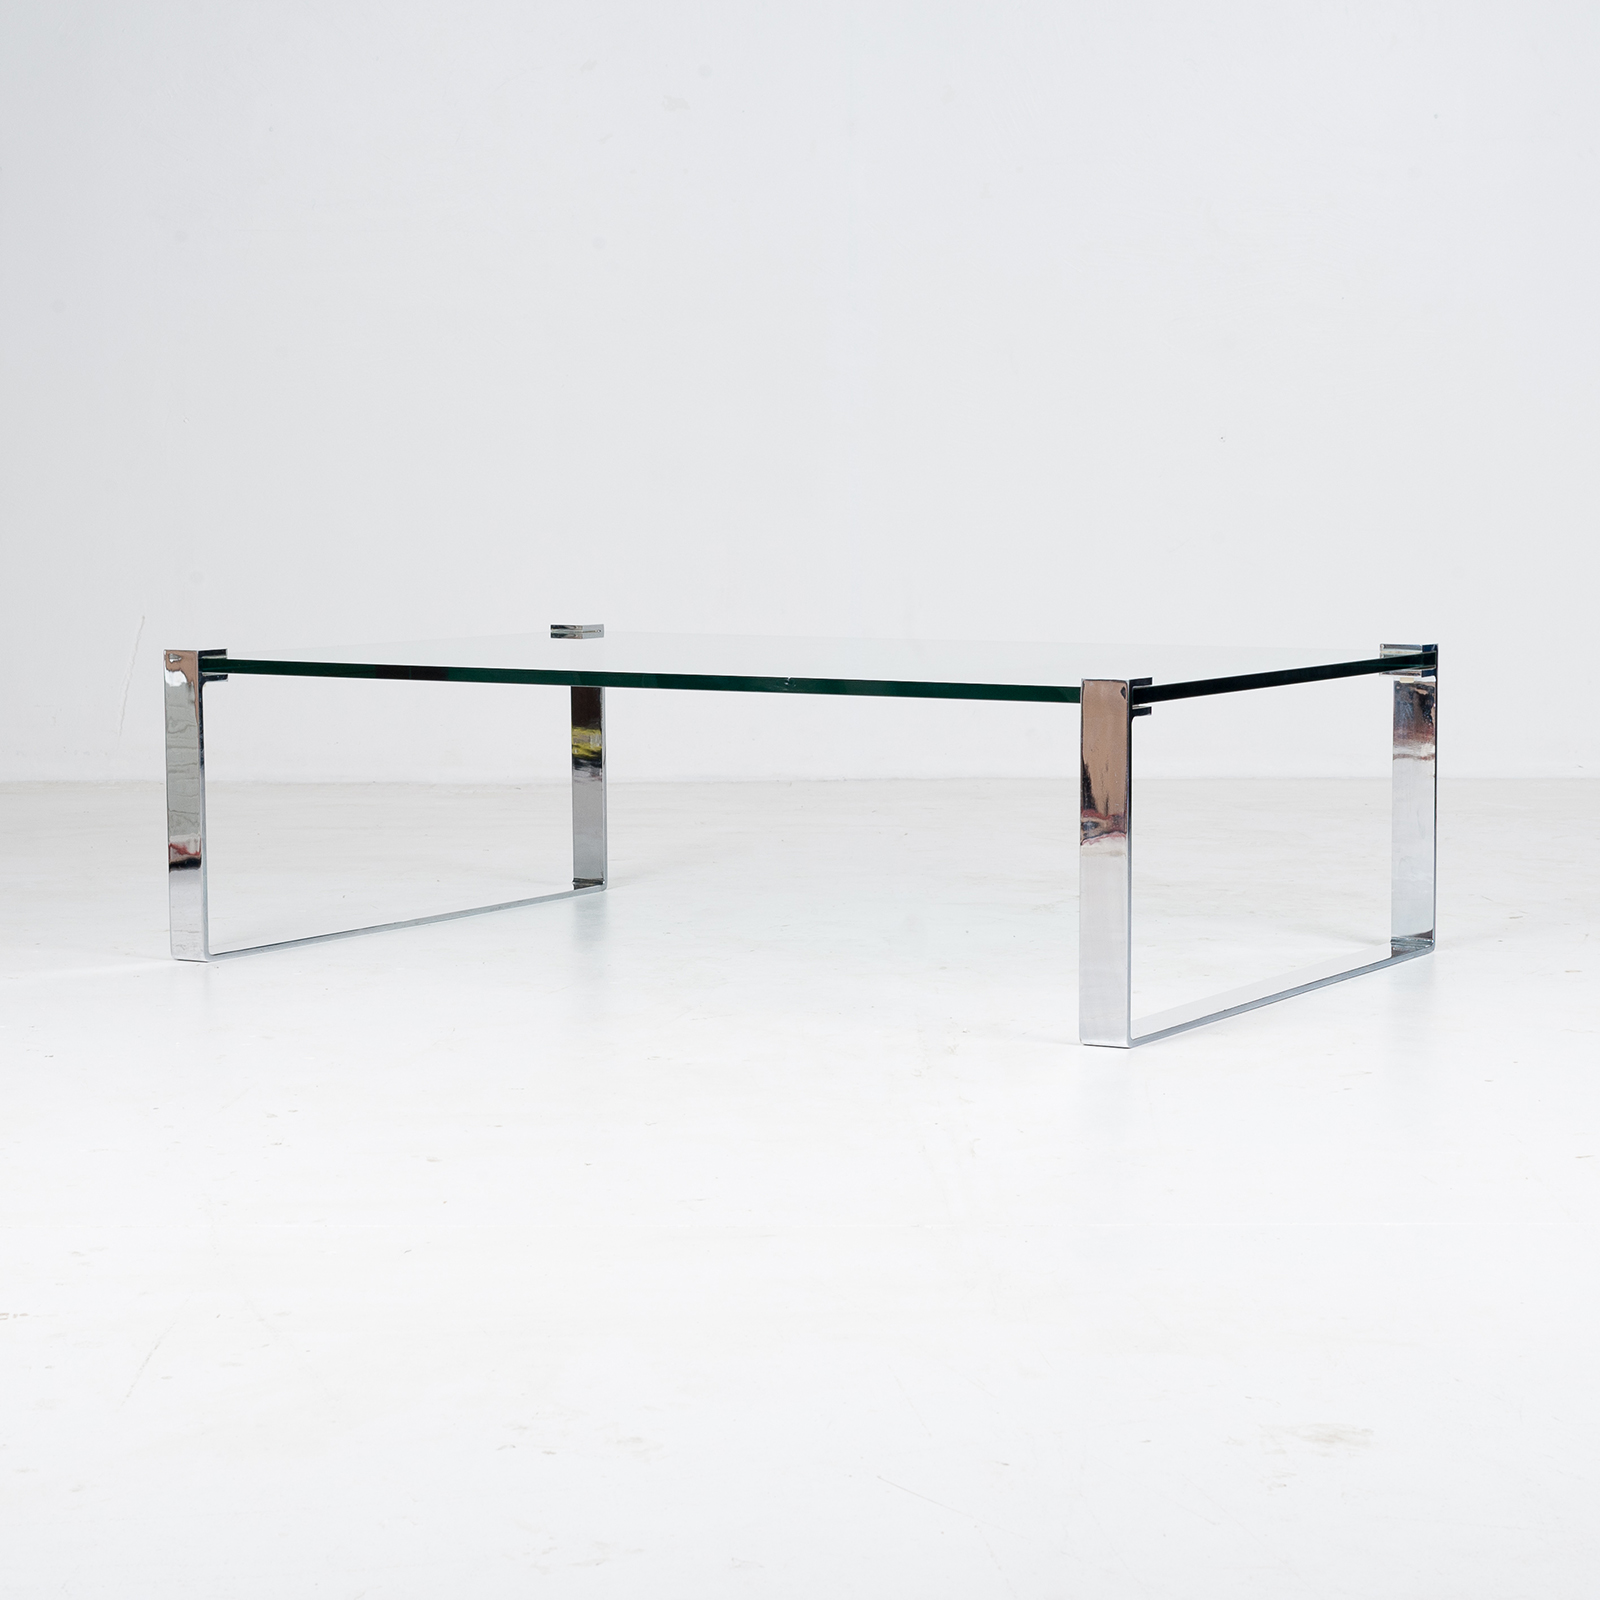 Model K 831 Rectangular Coffee Table With Glass And Polished Chrome By Friedrich Wilhelm Moller For Ronald Schmitt, 1970s, Germany 89